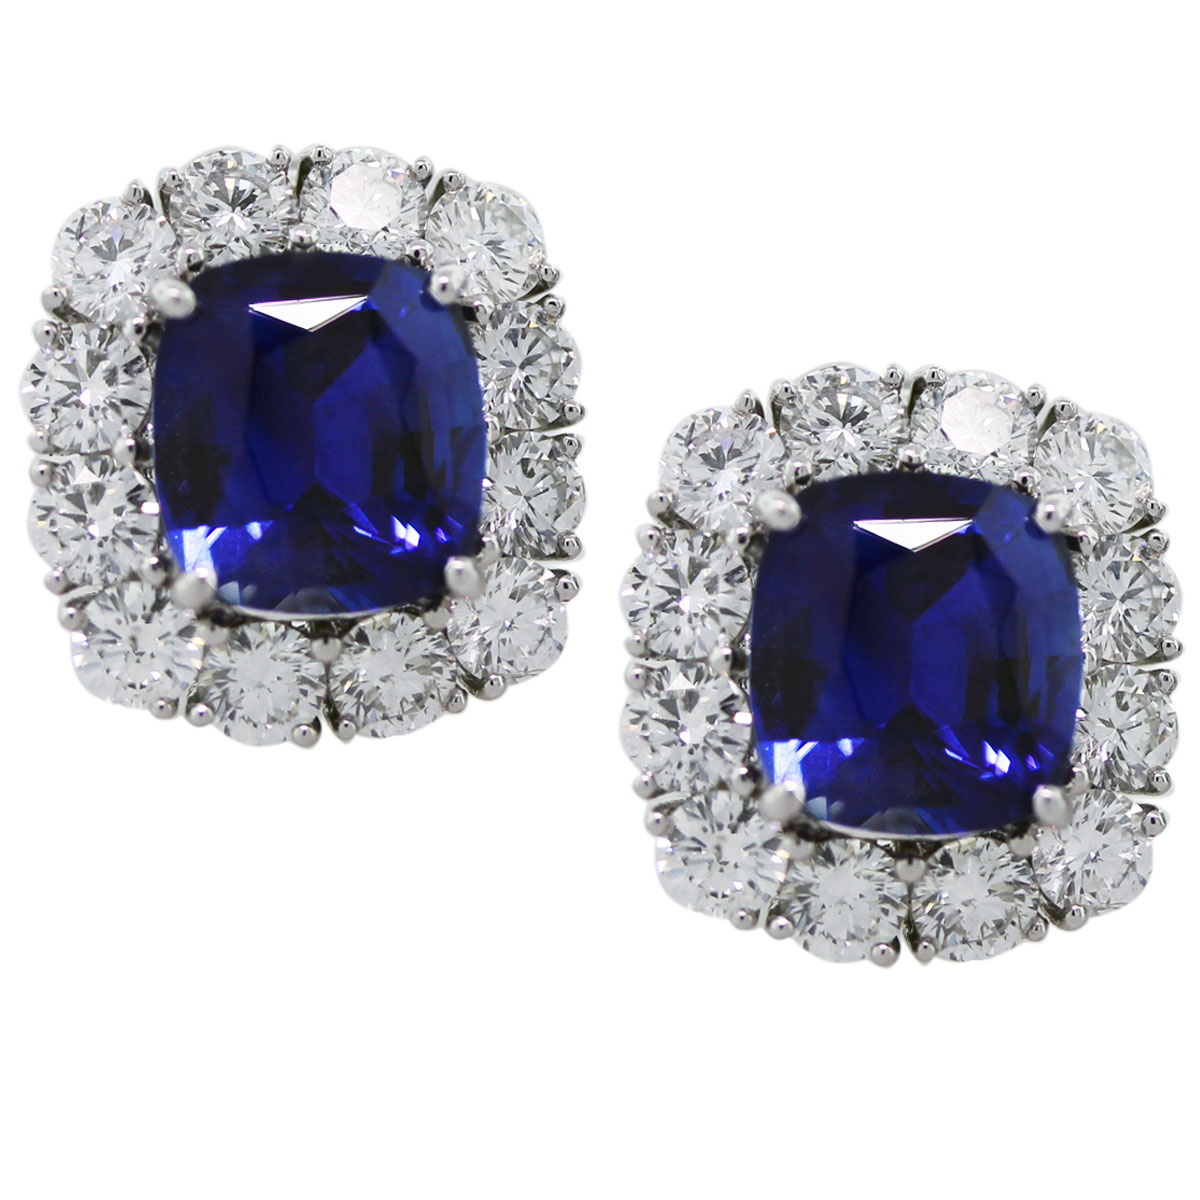 8.40 Carat Blue Sapphire and Diamond Platinum Button Earrings